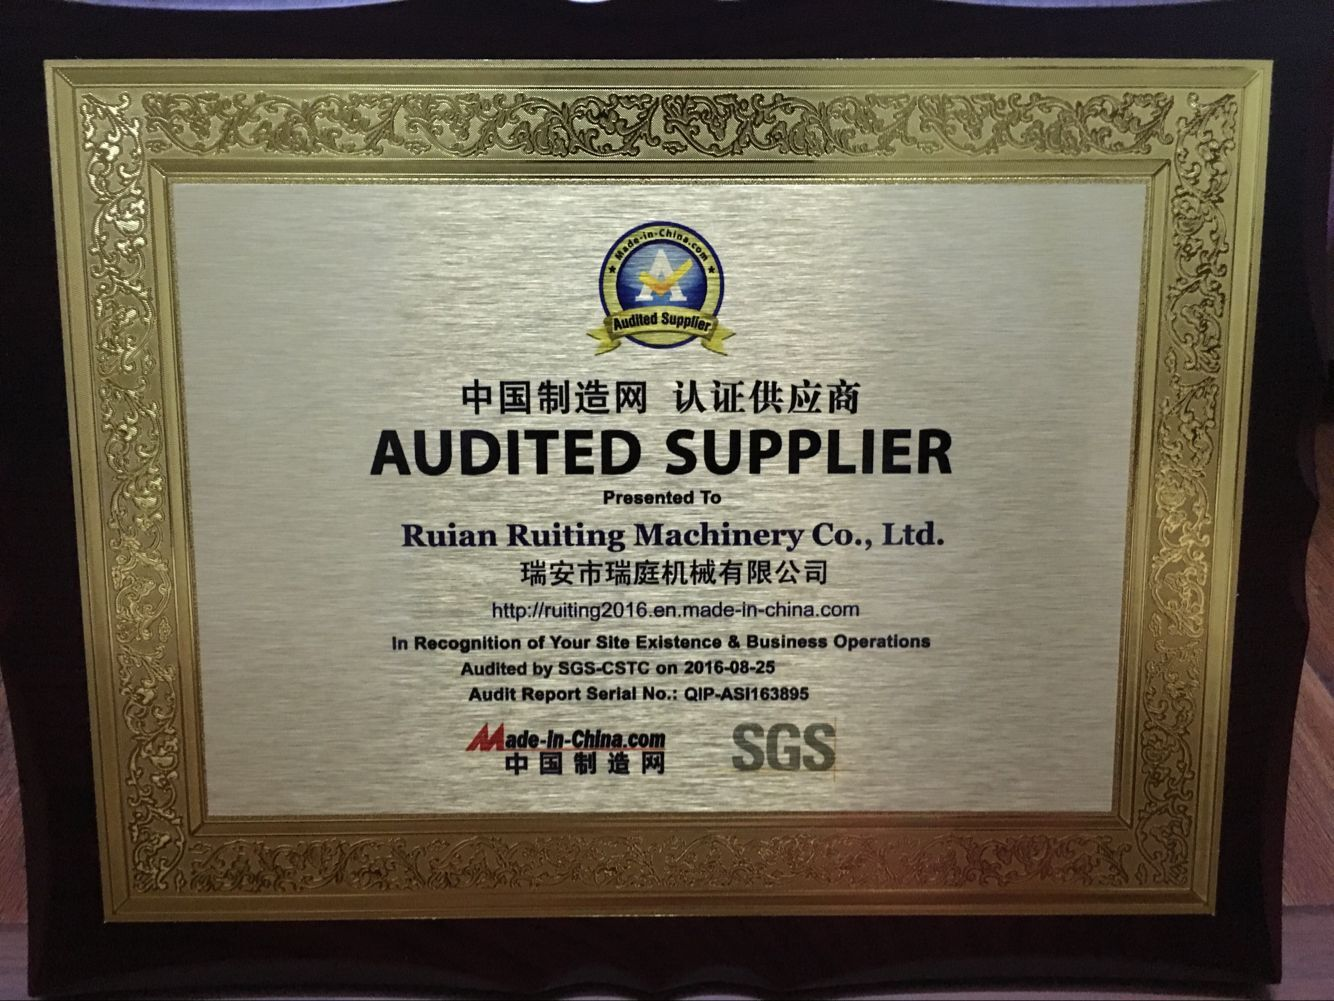 SGS by made in China